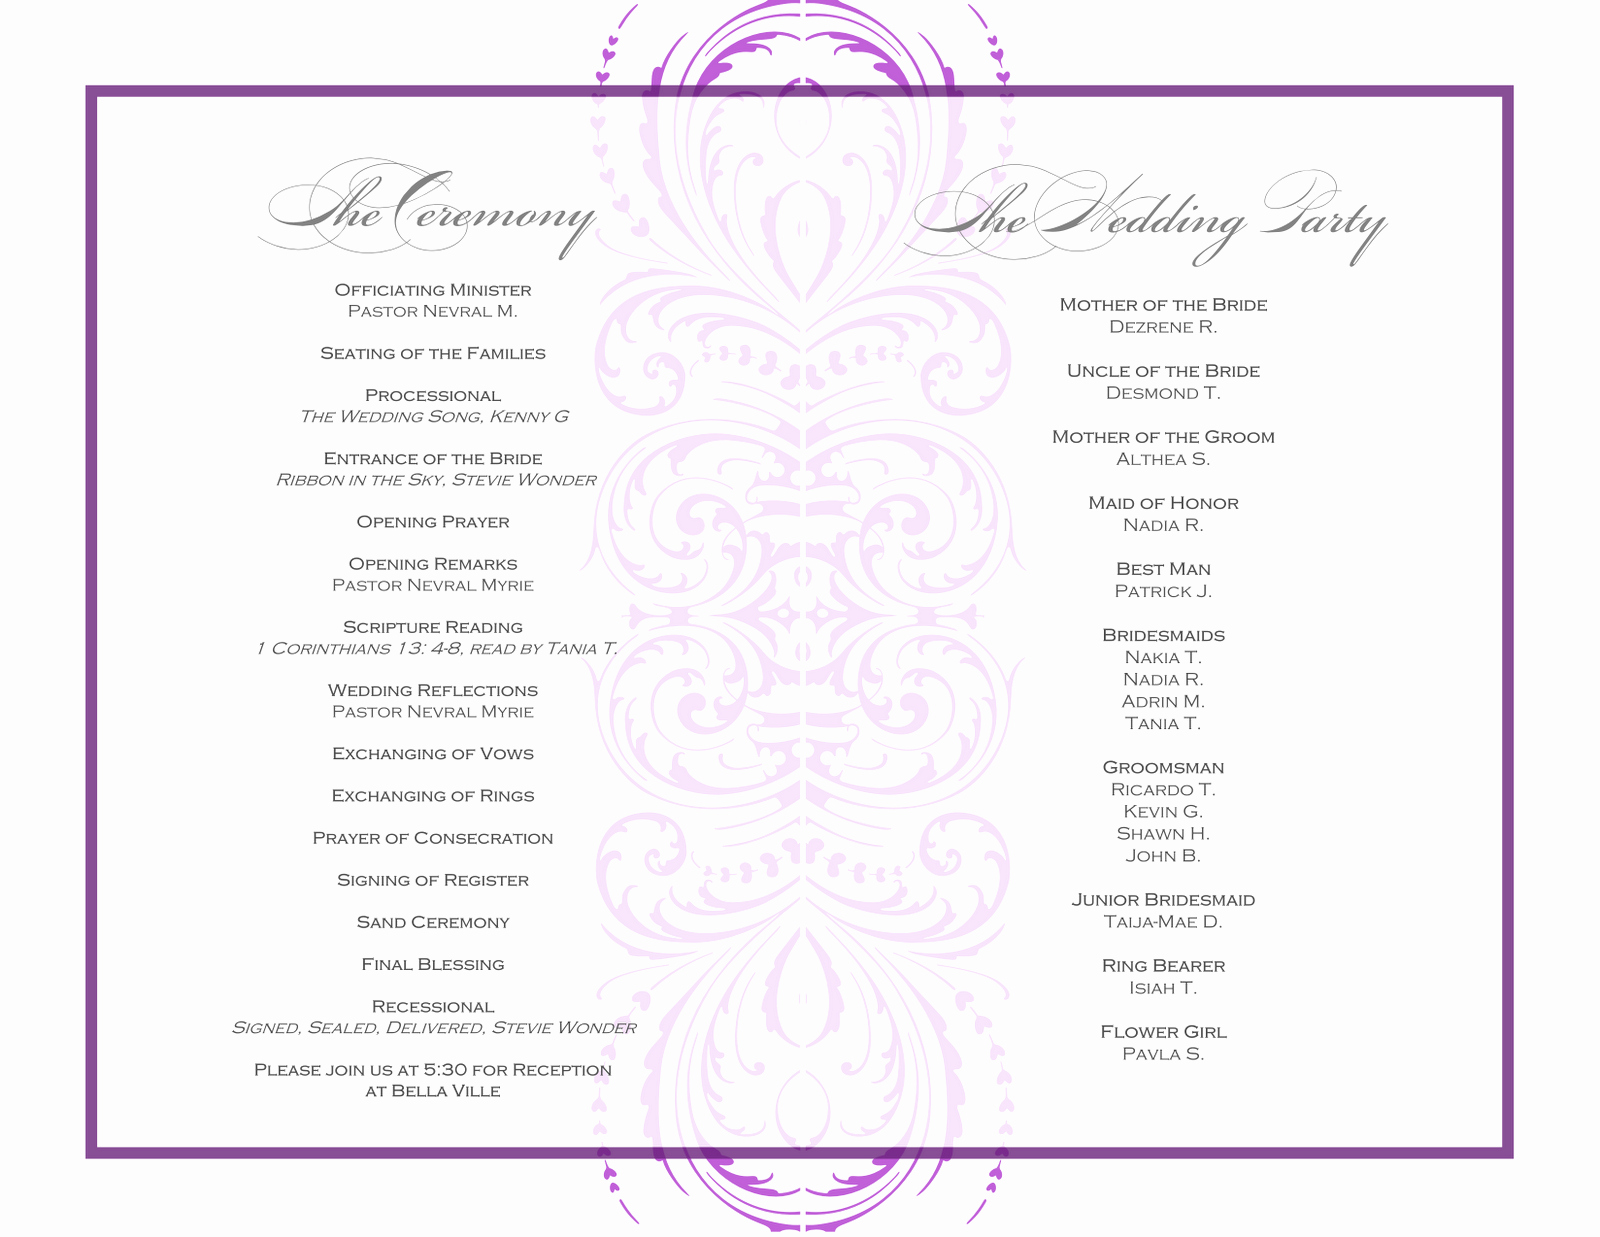 Free event Program Templates Luxury event Program Template